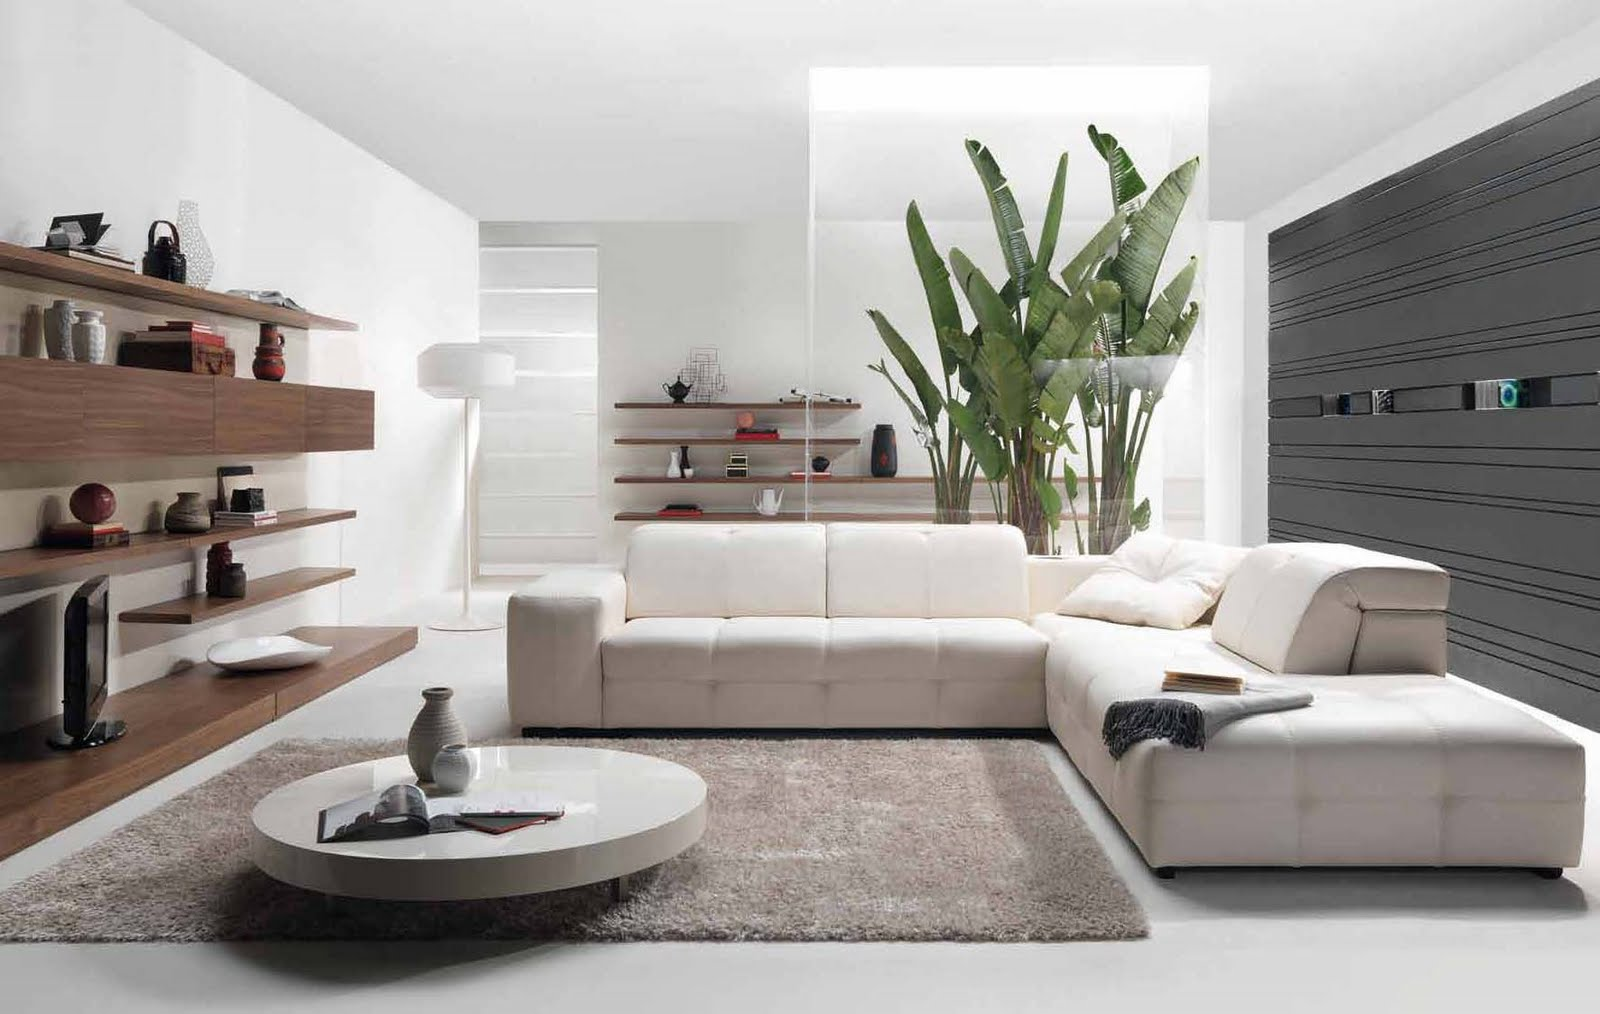 Future house design modern living room interior design for House interior design living room